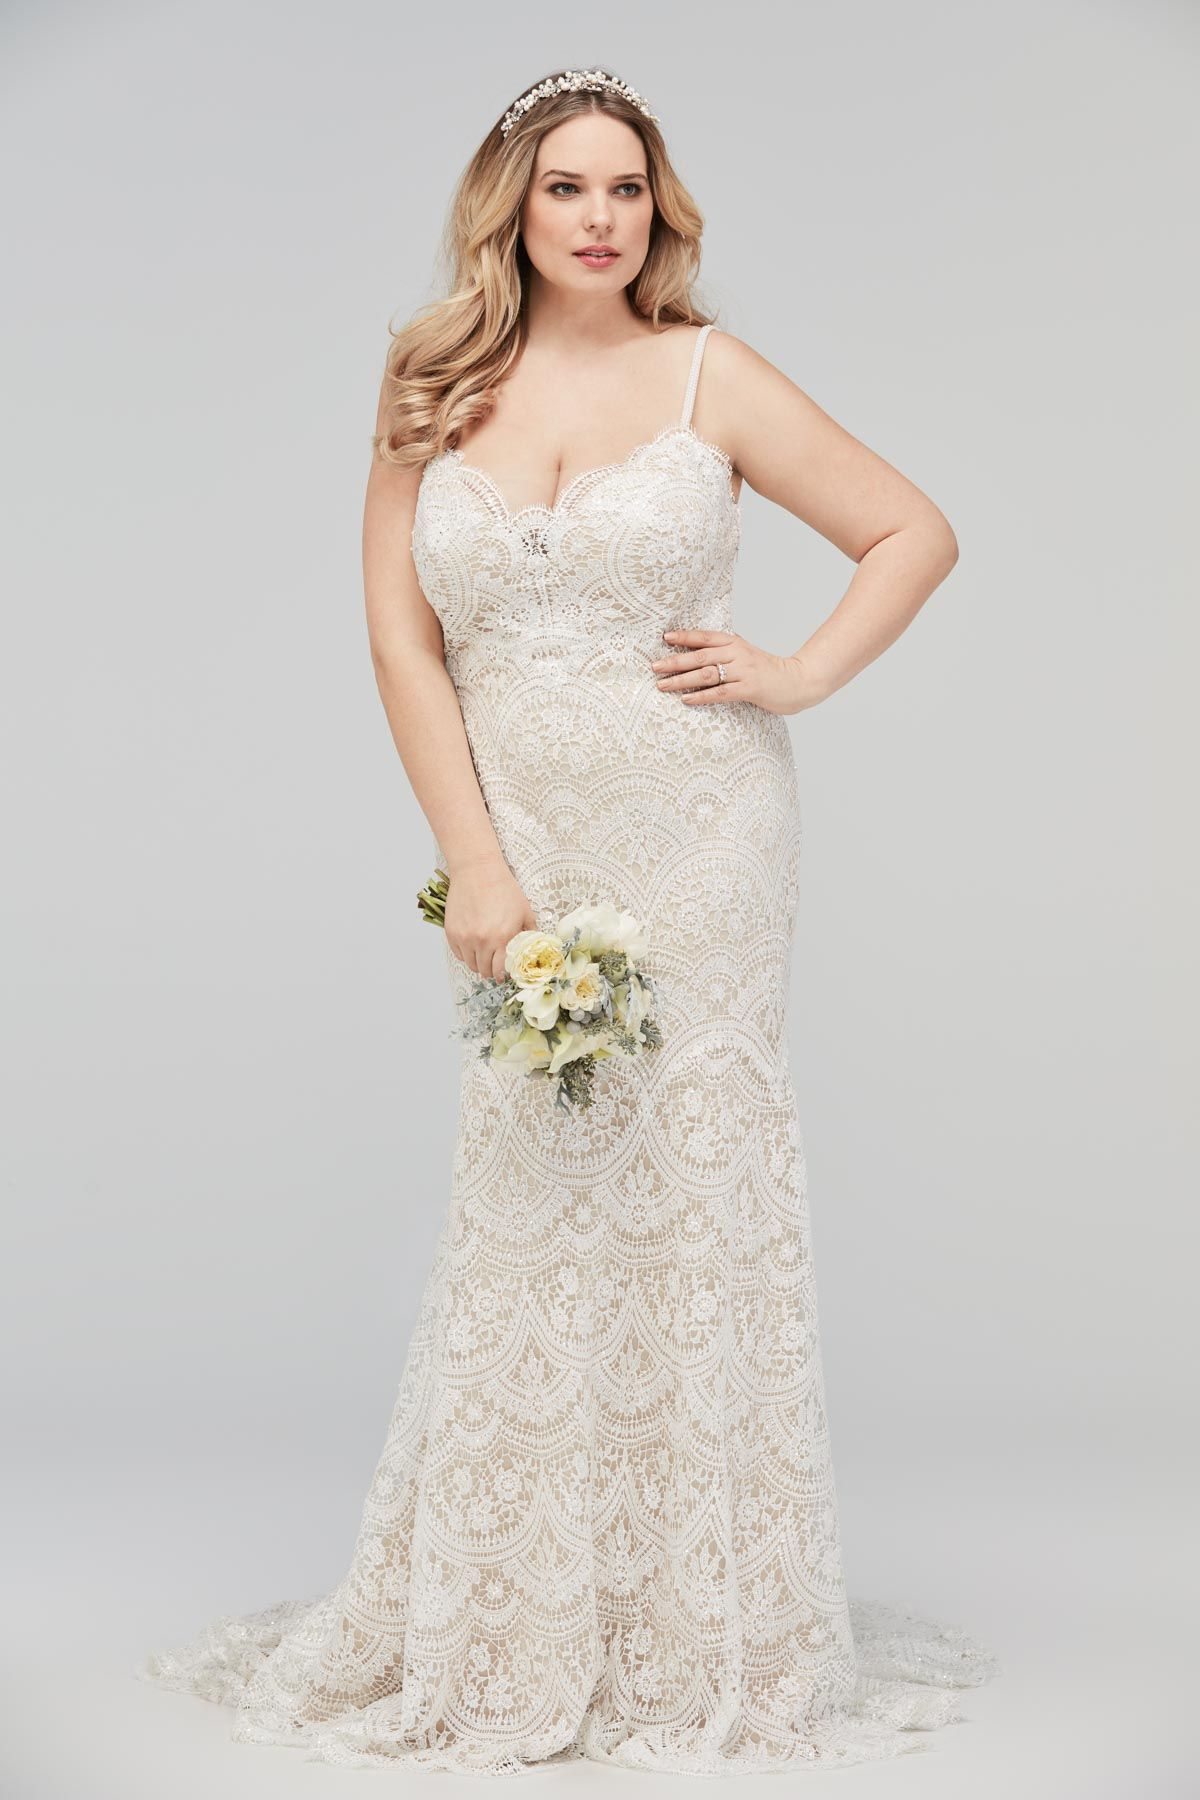 Plus Size Bridal Gown - the Elise Gown by WToo (Watters) - Curvy ...